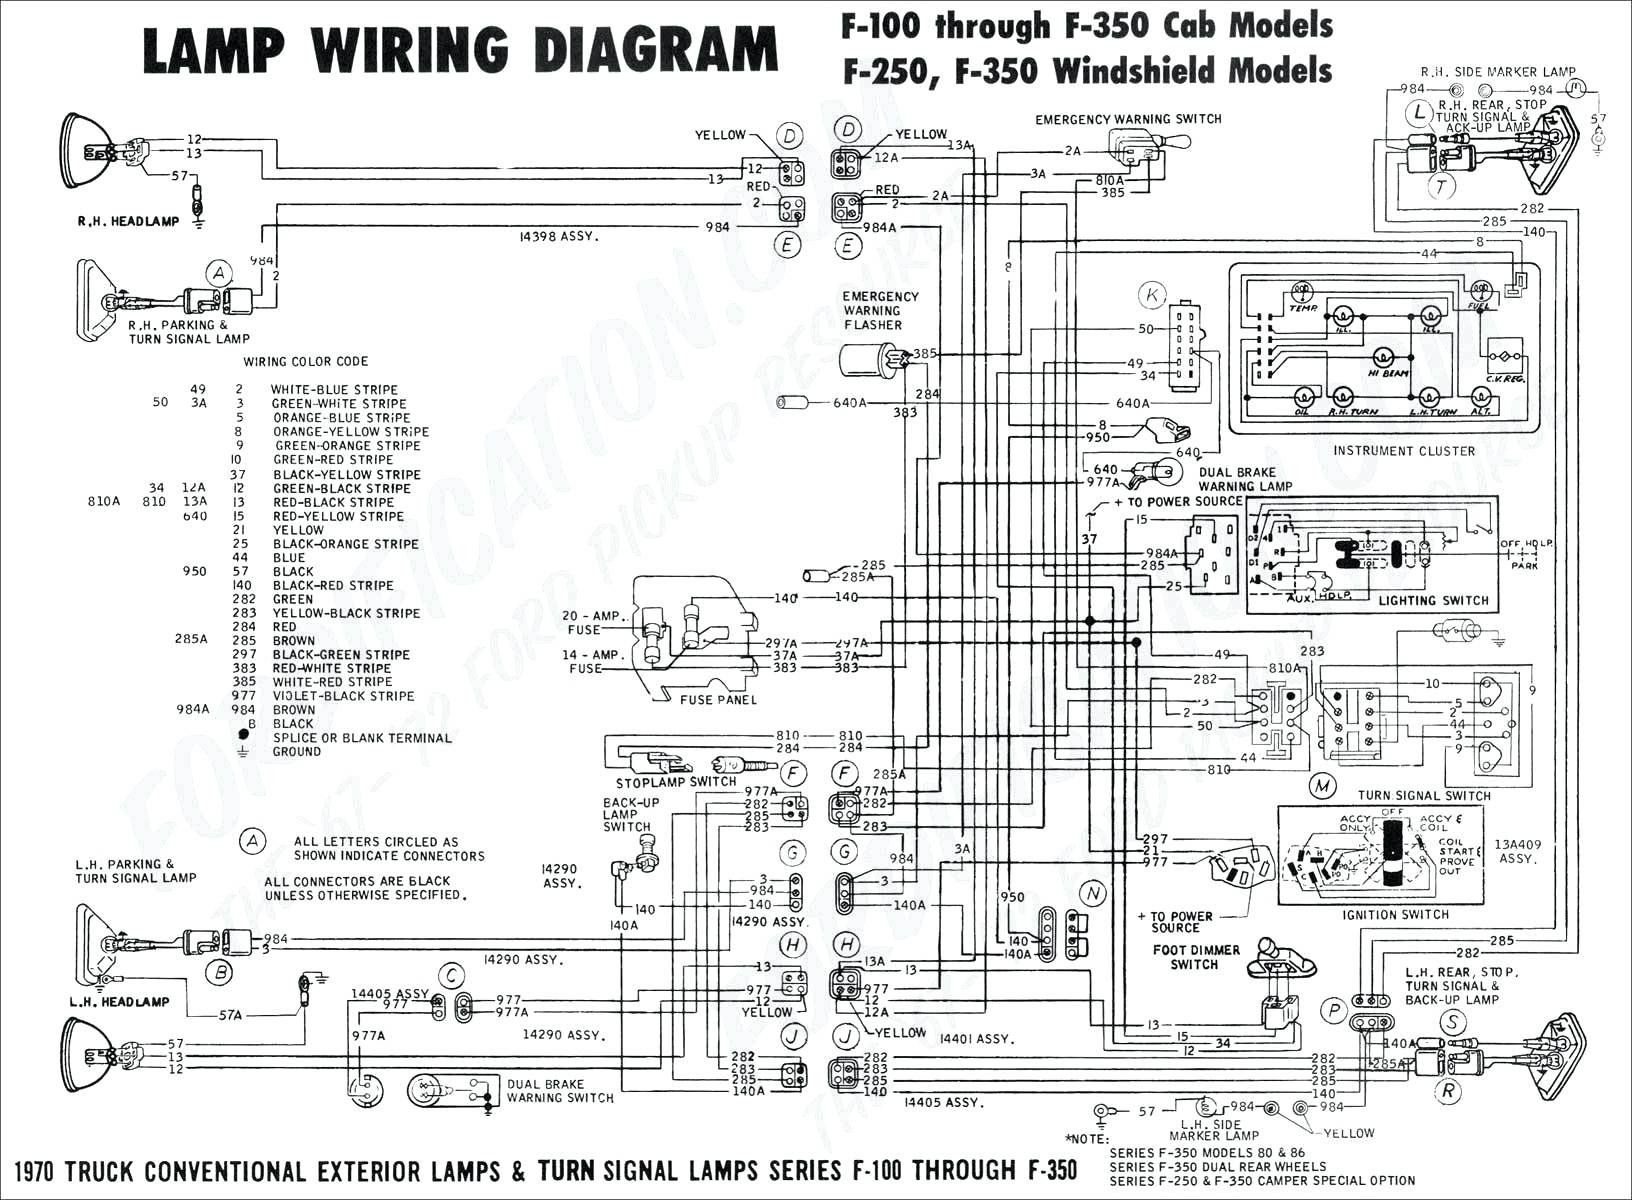 2004 ford f350 wiring schematic - wiring diagram save sick-win -  sick-win.citisceramiche.it  citisceramiche.it